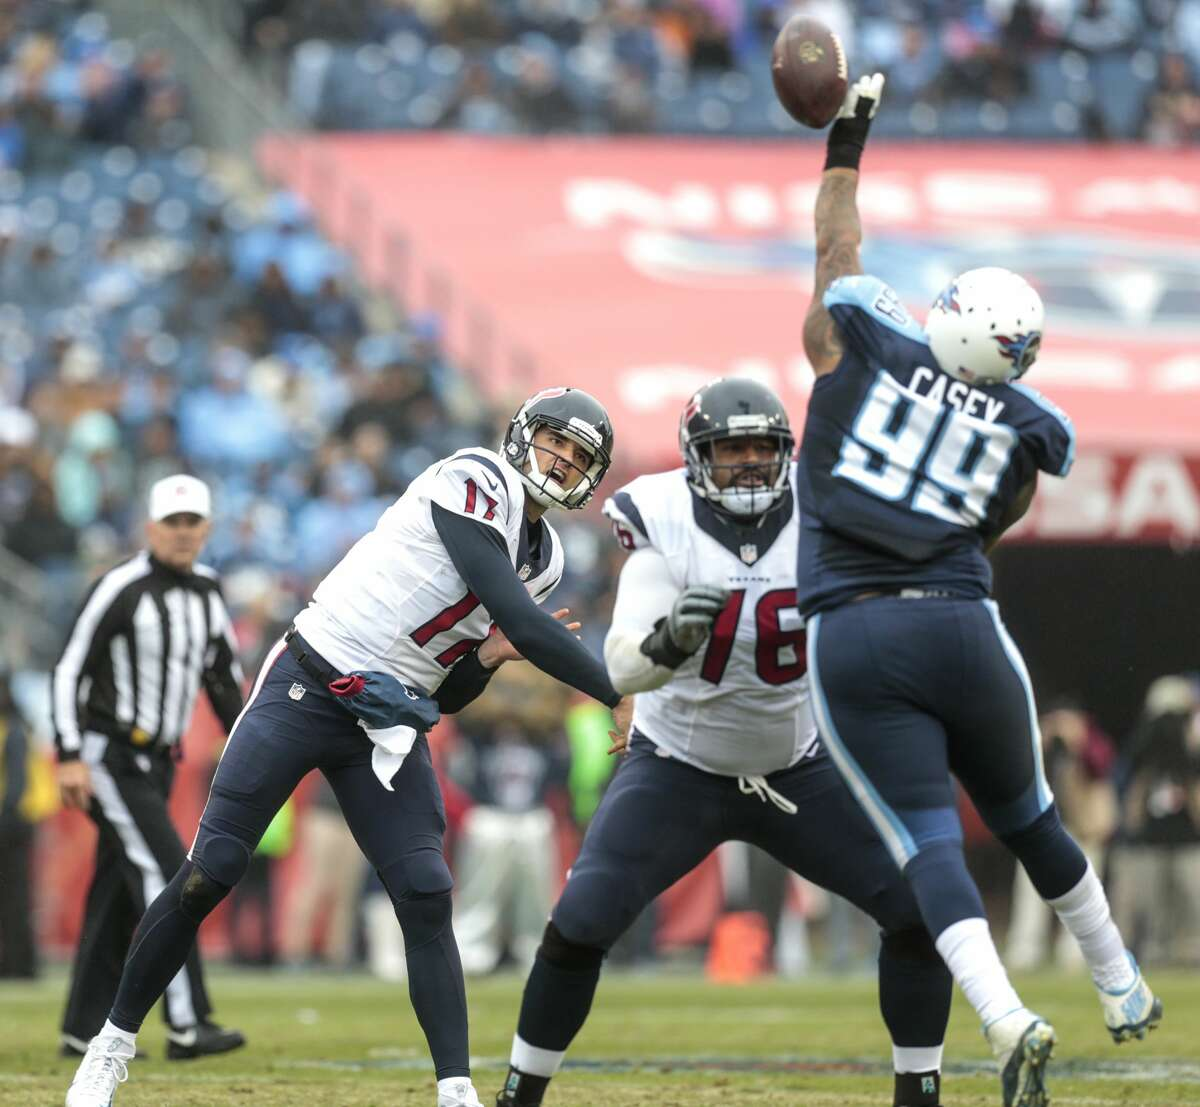 Tennessee Titans defensive end Jurrell Casey (99) knocks down a pass by Houston Texans quarterback Brock Osweiler (17) during the second quarter of an NFL football game at Nissan Stadium on Sunday, Jan. 1, 2017, in Nashville. ( Brett Coomer / Houston Chronicle )